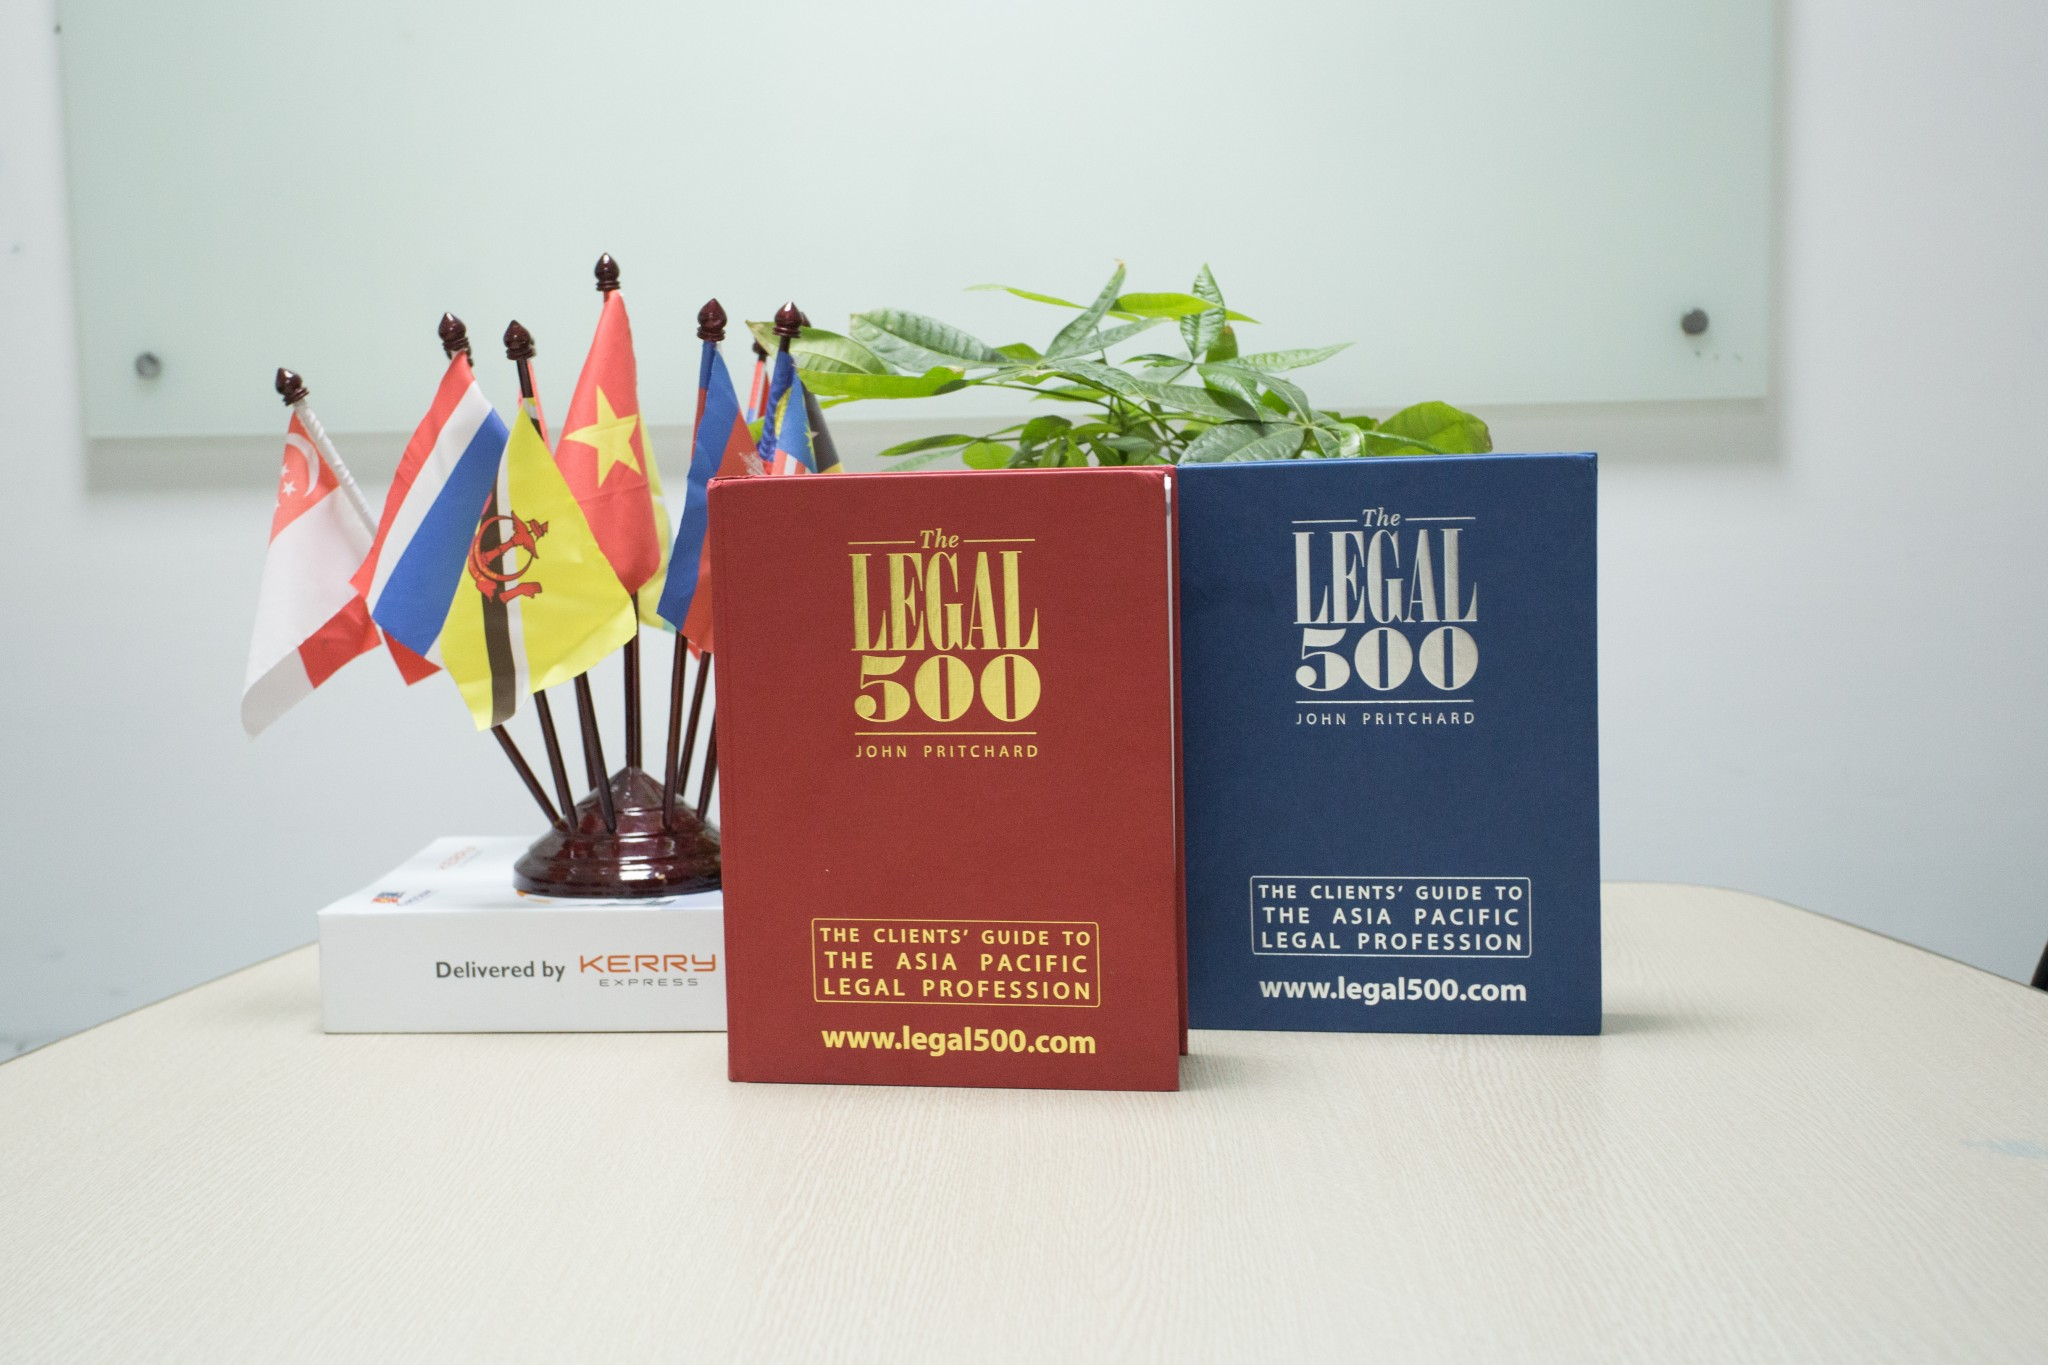 International Award for Vietnam Law Firm